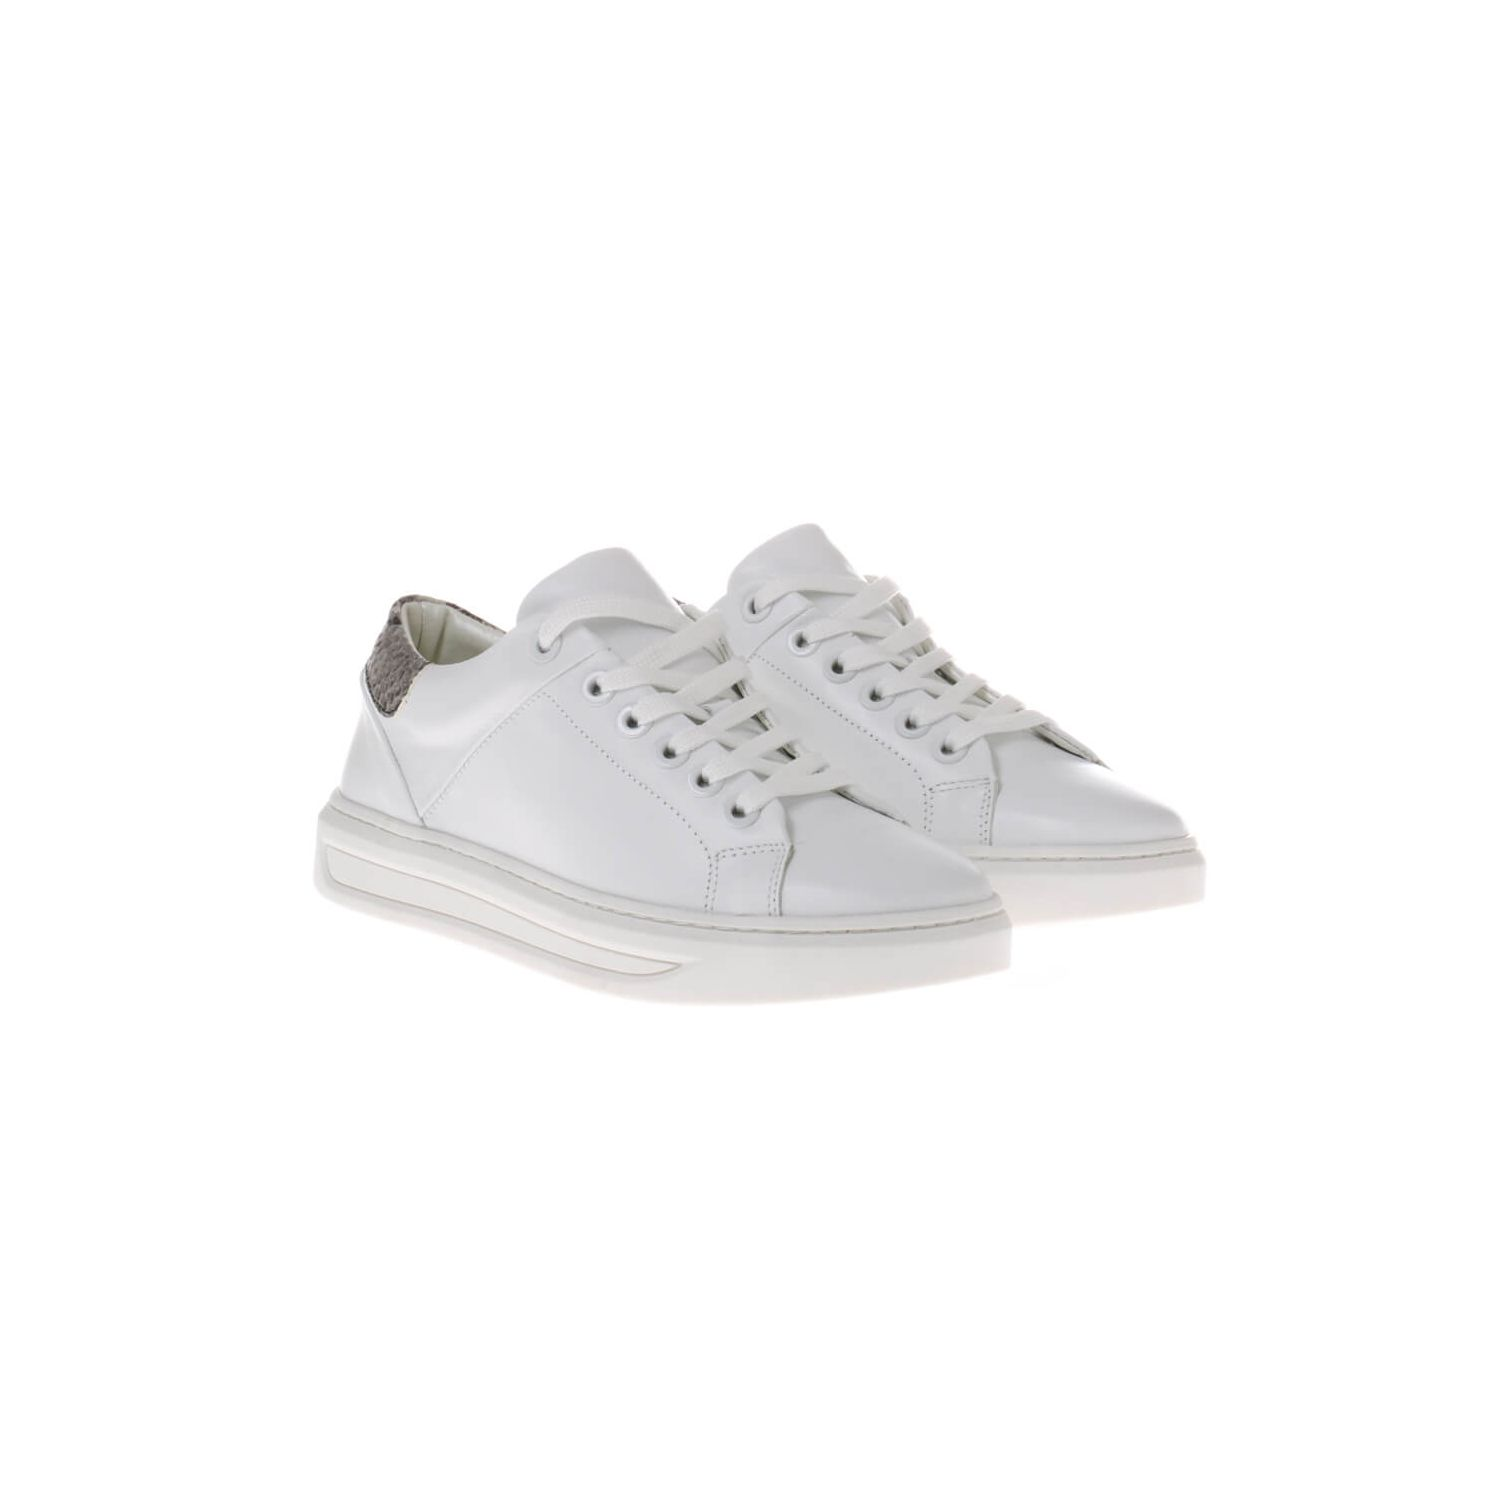 HIP D1506 Sneakers Wit Python